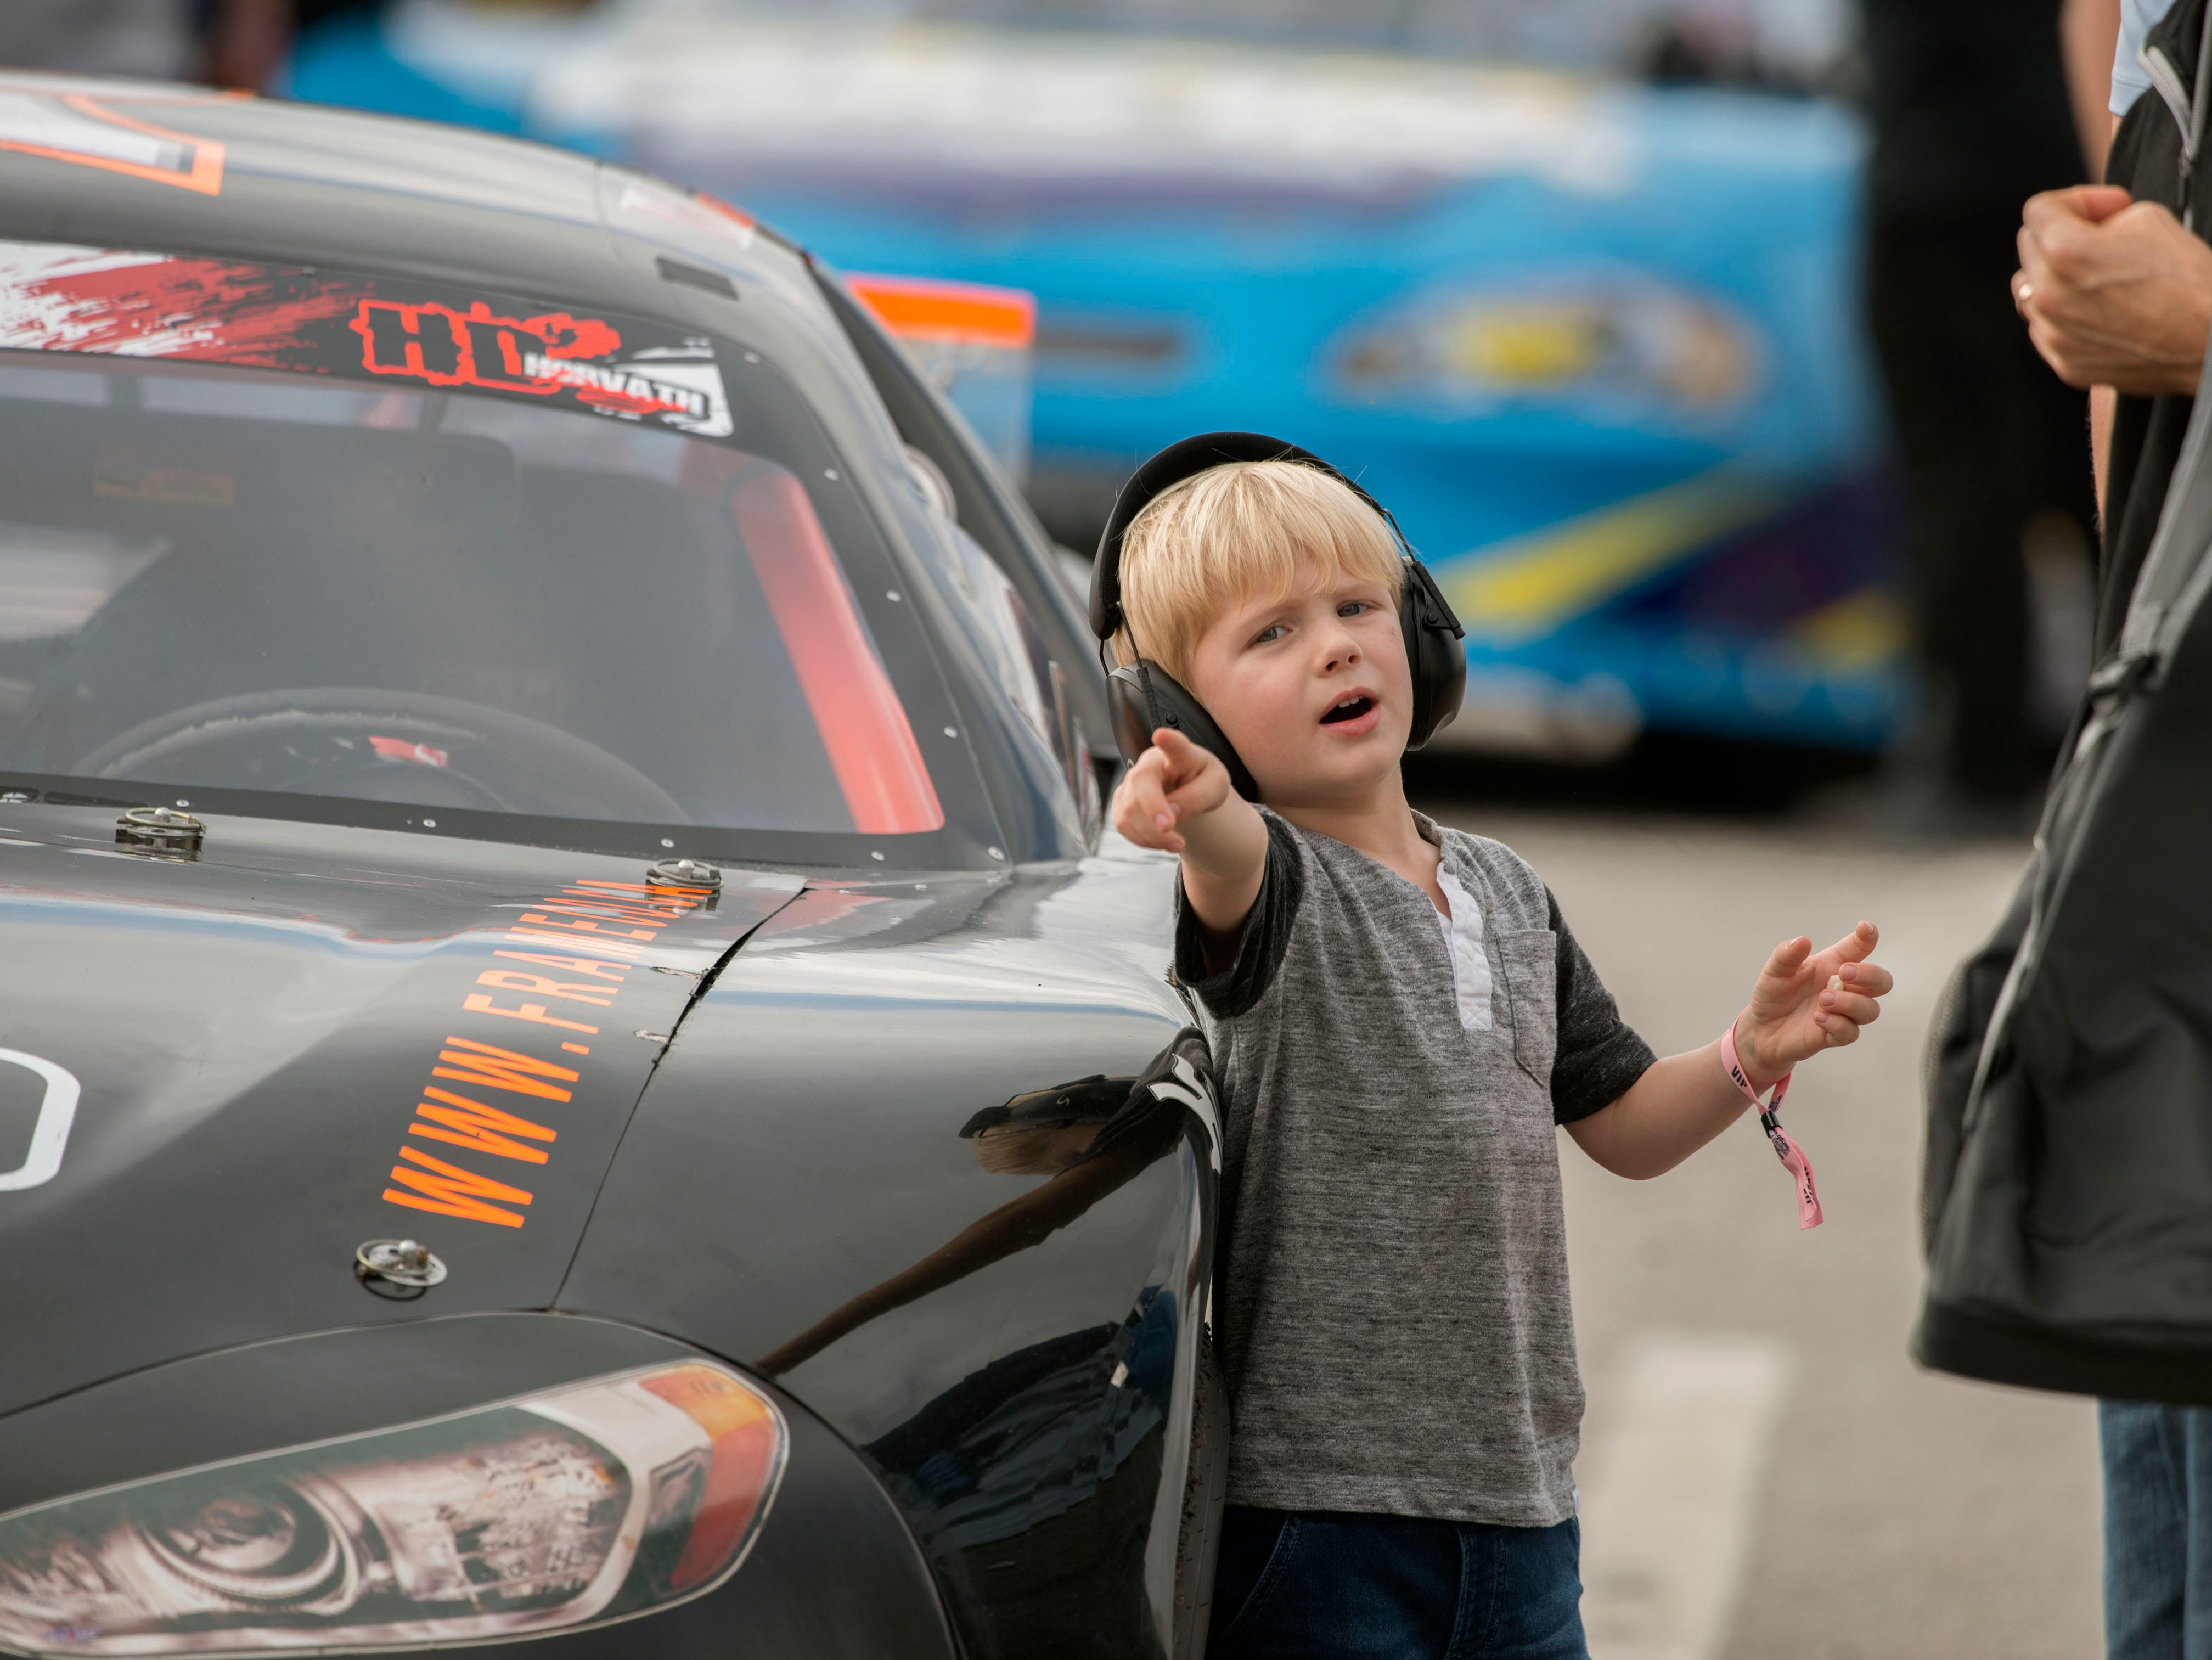 Cooper Burks,3, checks out the cars Sunday, December 2, 2018 during the 51st annual Snowball Derby at Five Flags Speedway.